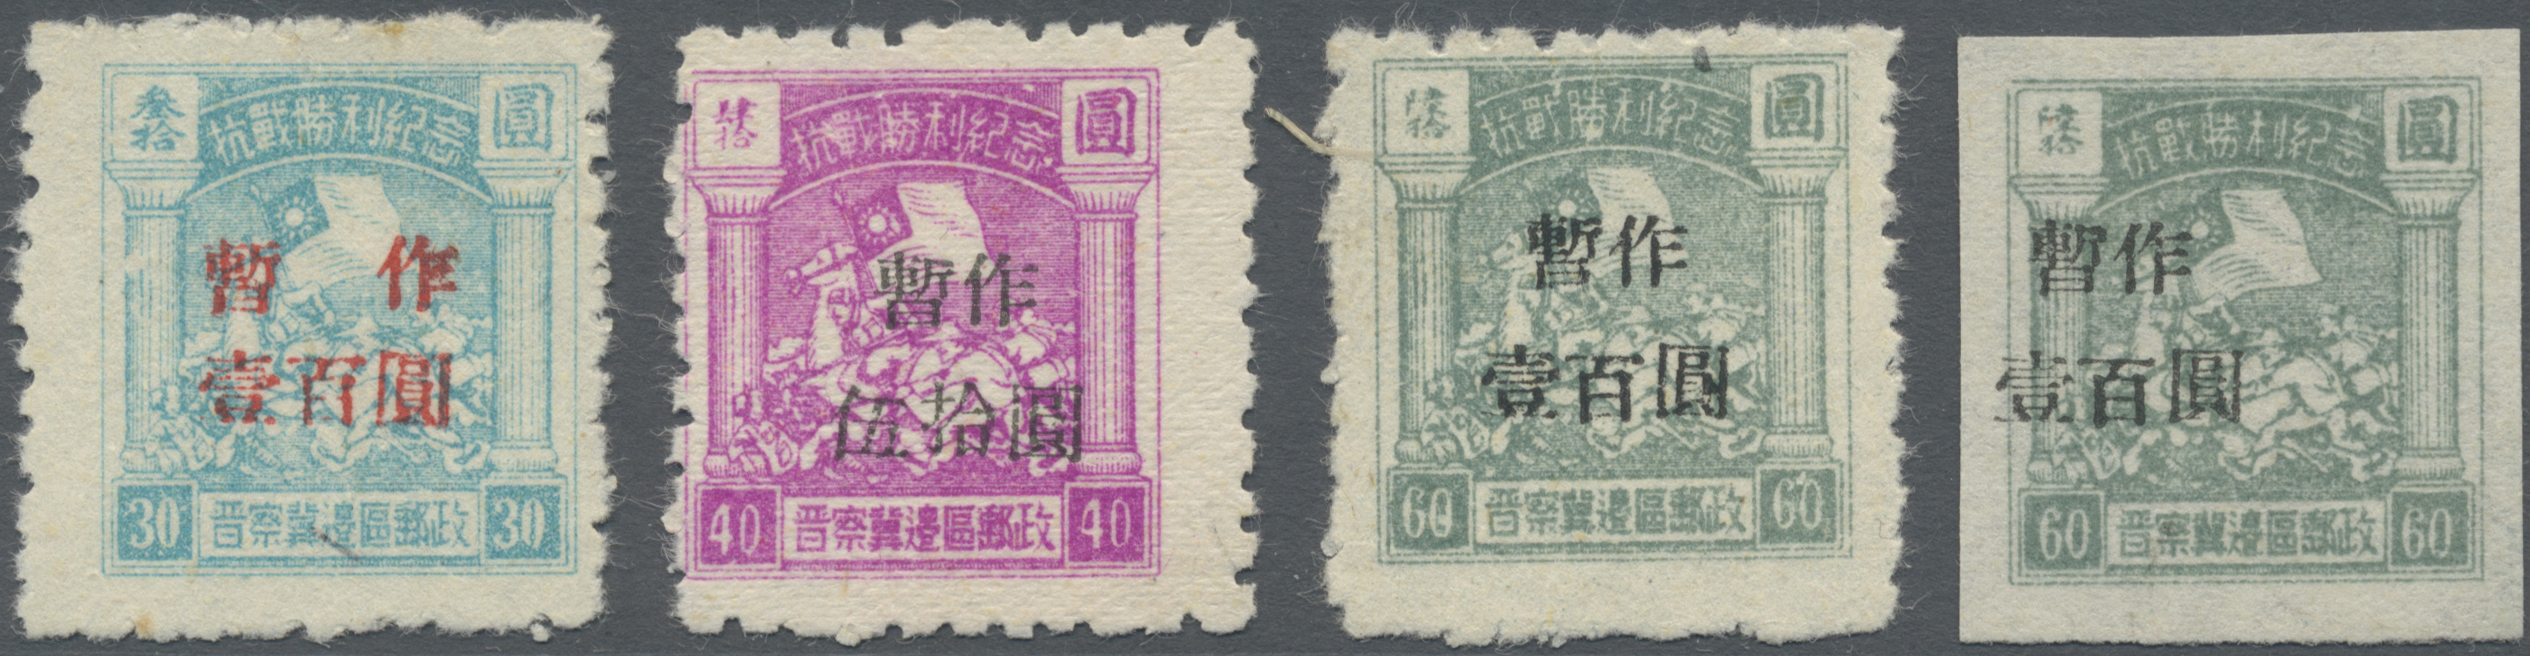 Lot 05014 - China - Volksrepublik - Provinzen  -  Auktionshaus Christoph Gärtner GmbH & Co. KG Sale #43 China & China - Liberated Areas, Day 3